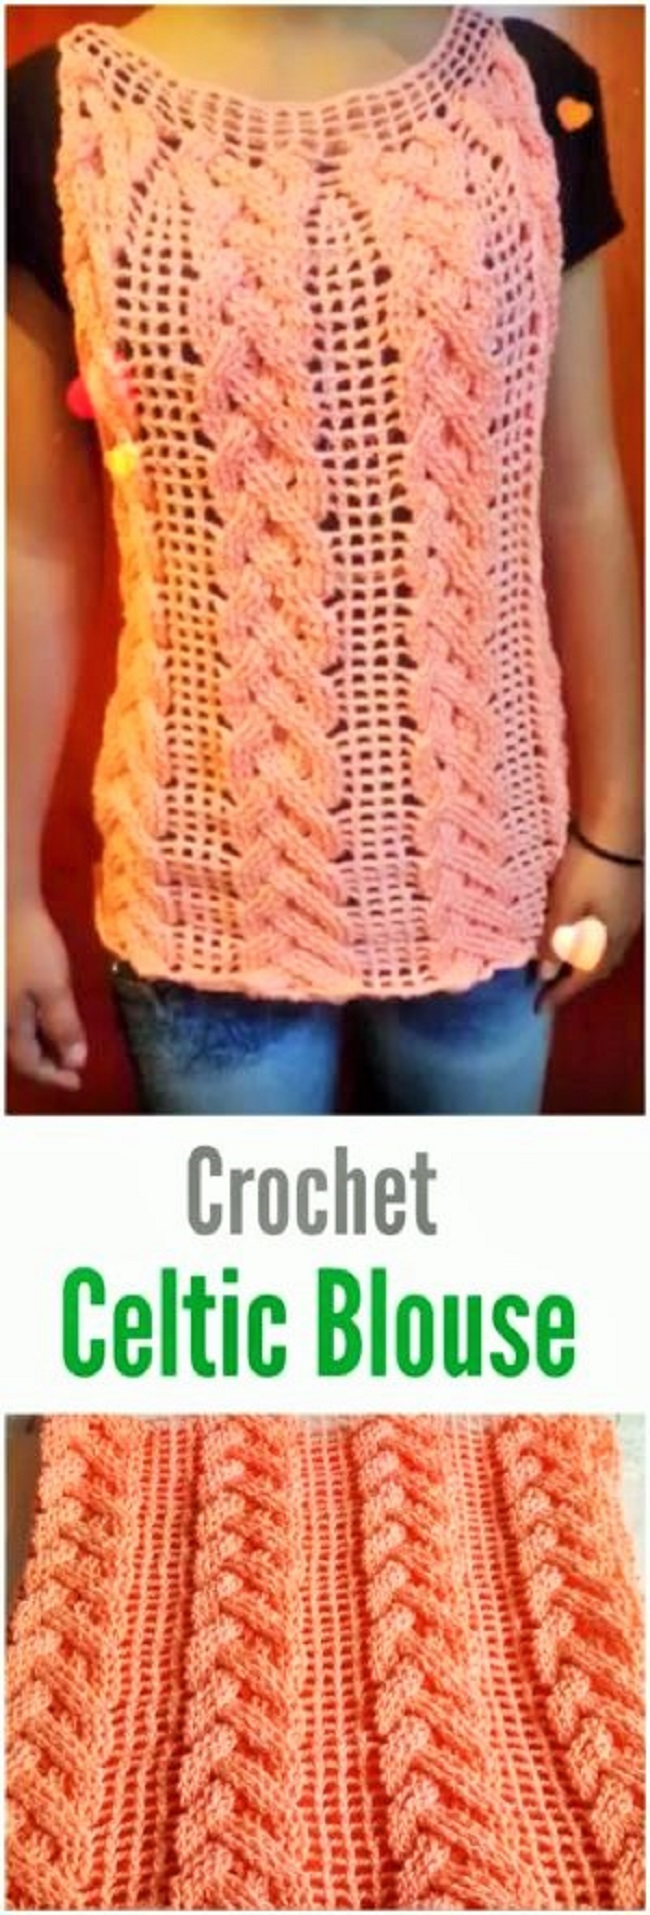 Home made Diy crochet Ideas-13